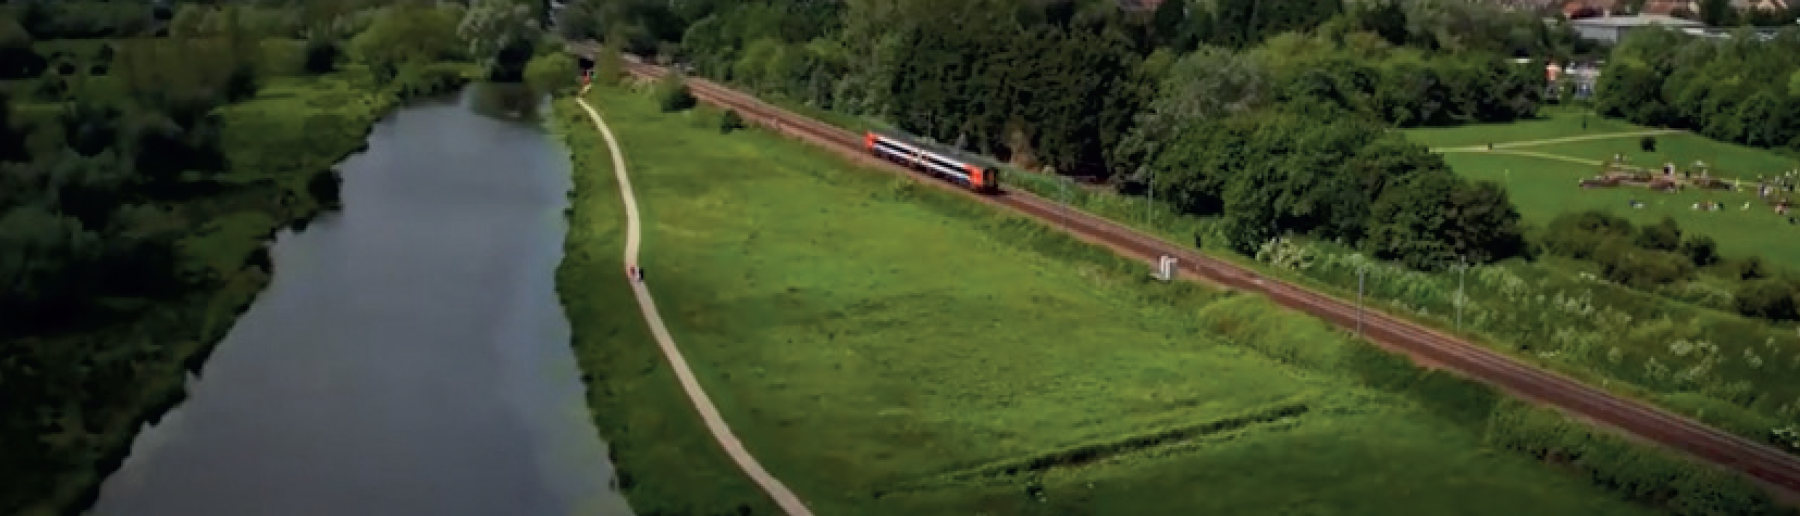 Wide shot of Ely area train line